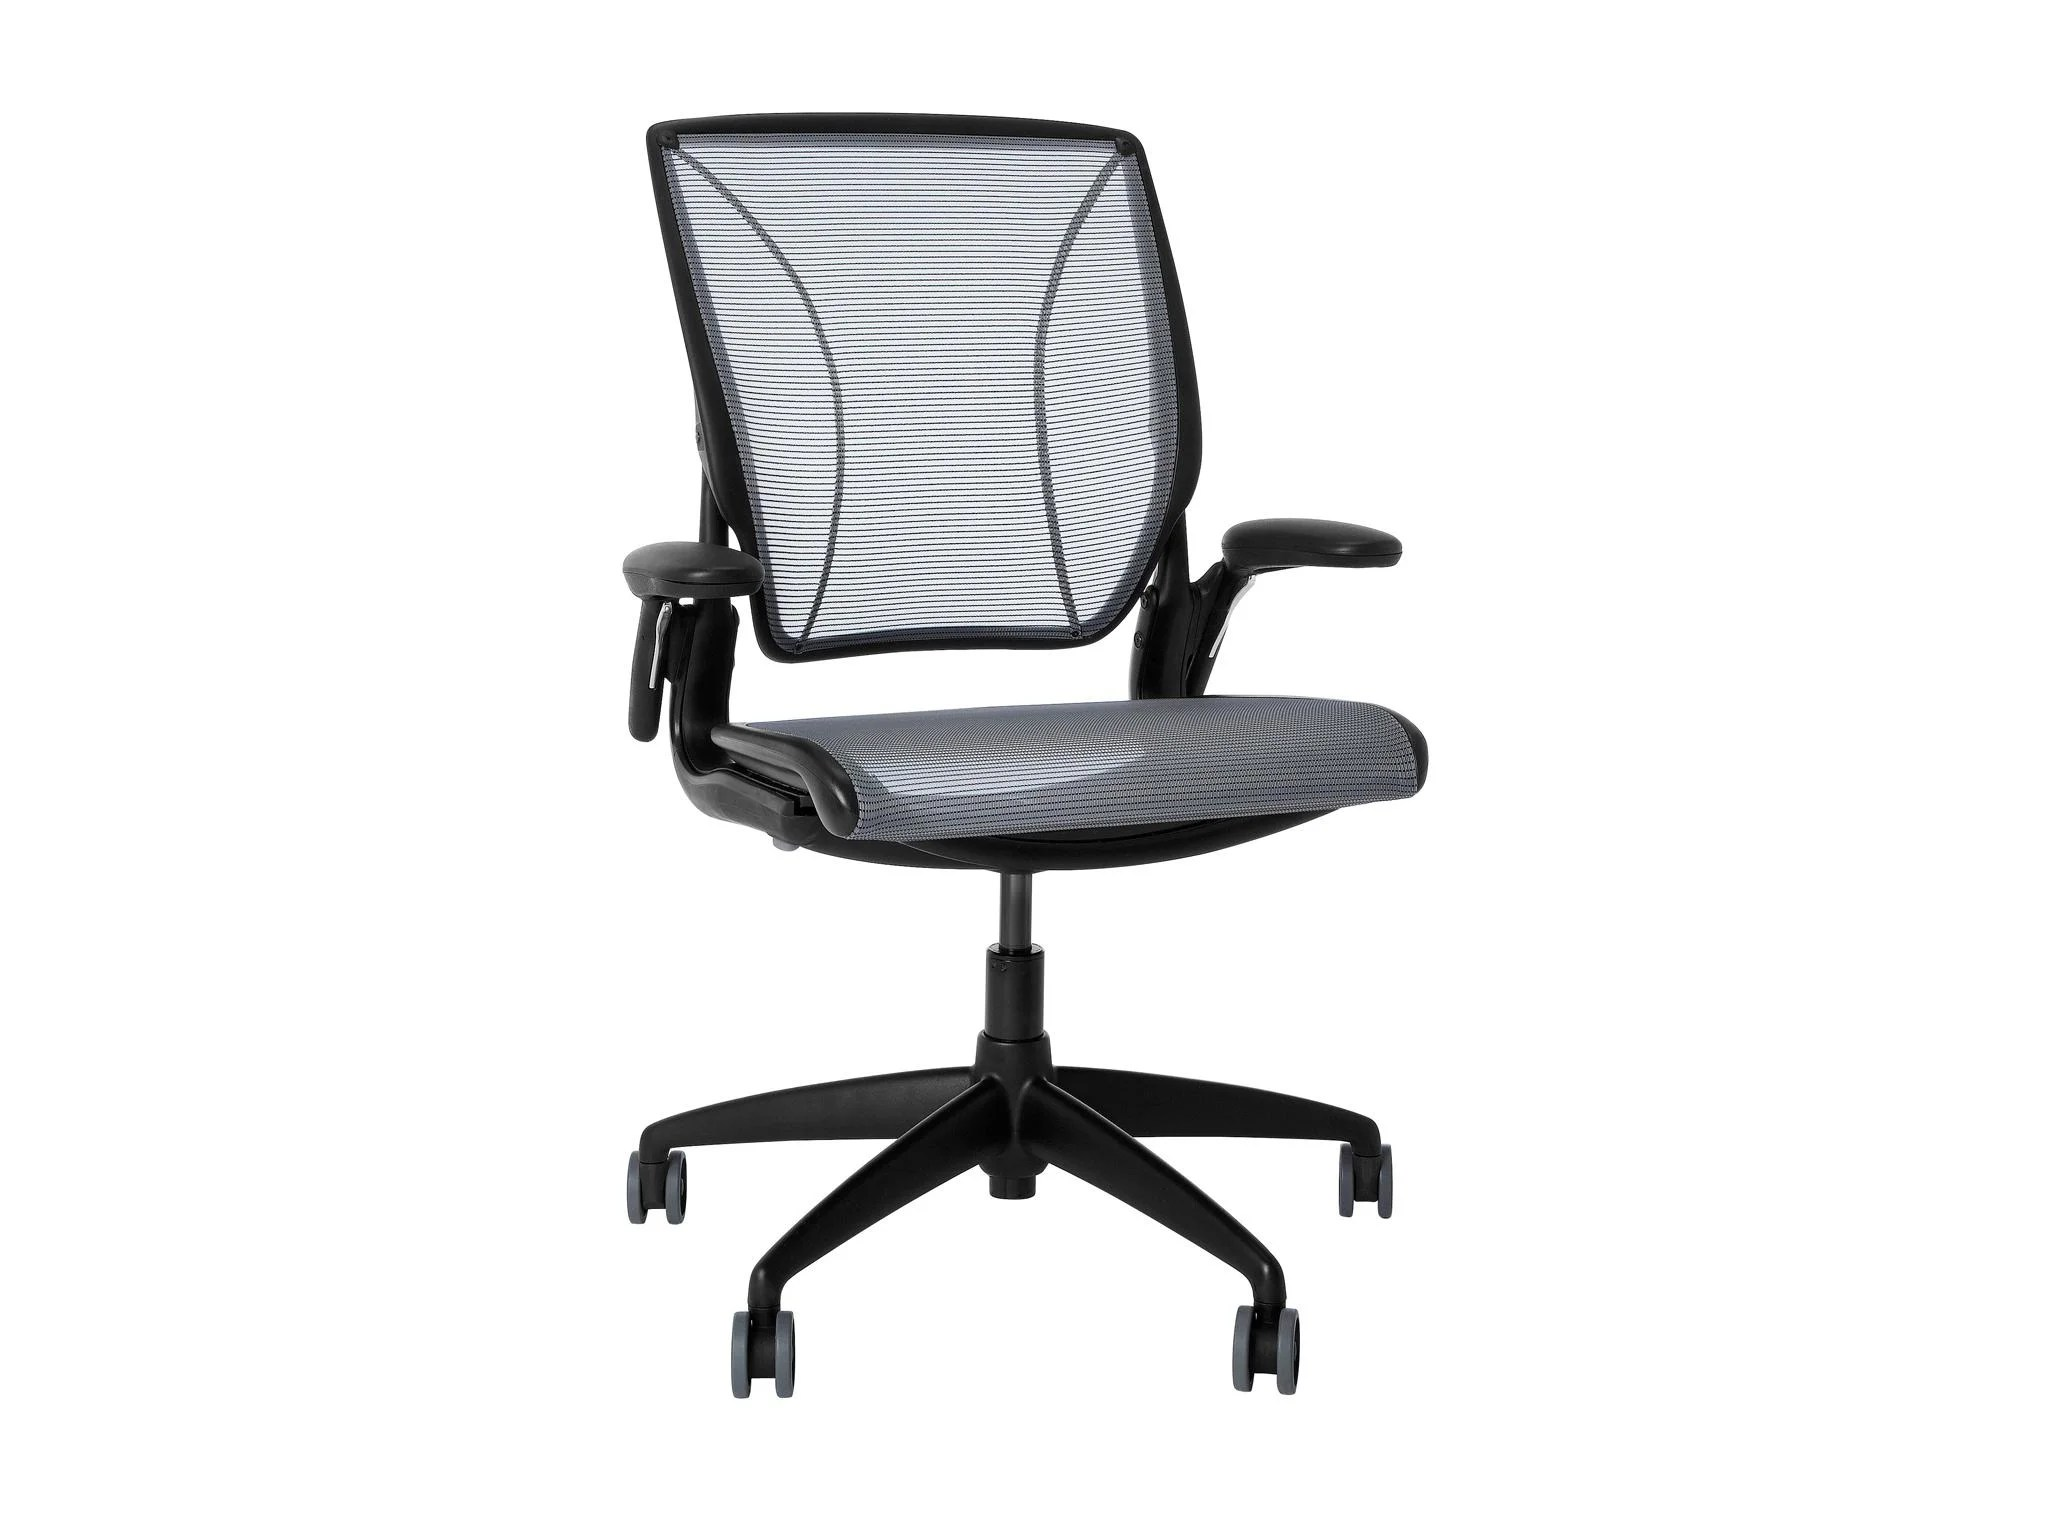 Humanscale Diffrient World Chair 7 Best Ergonomic Office Chairs Chairorama